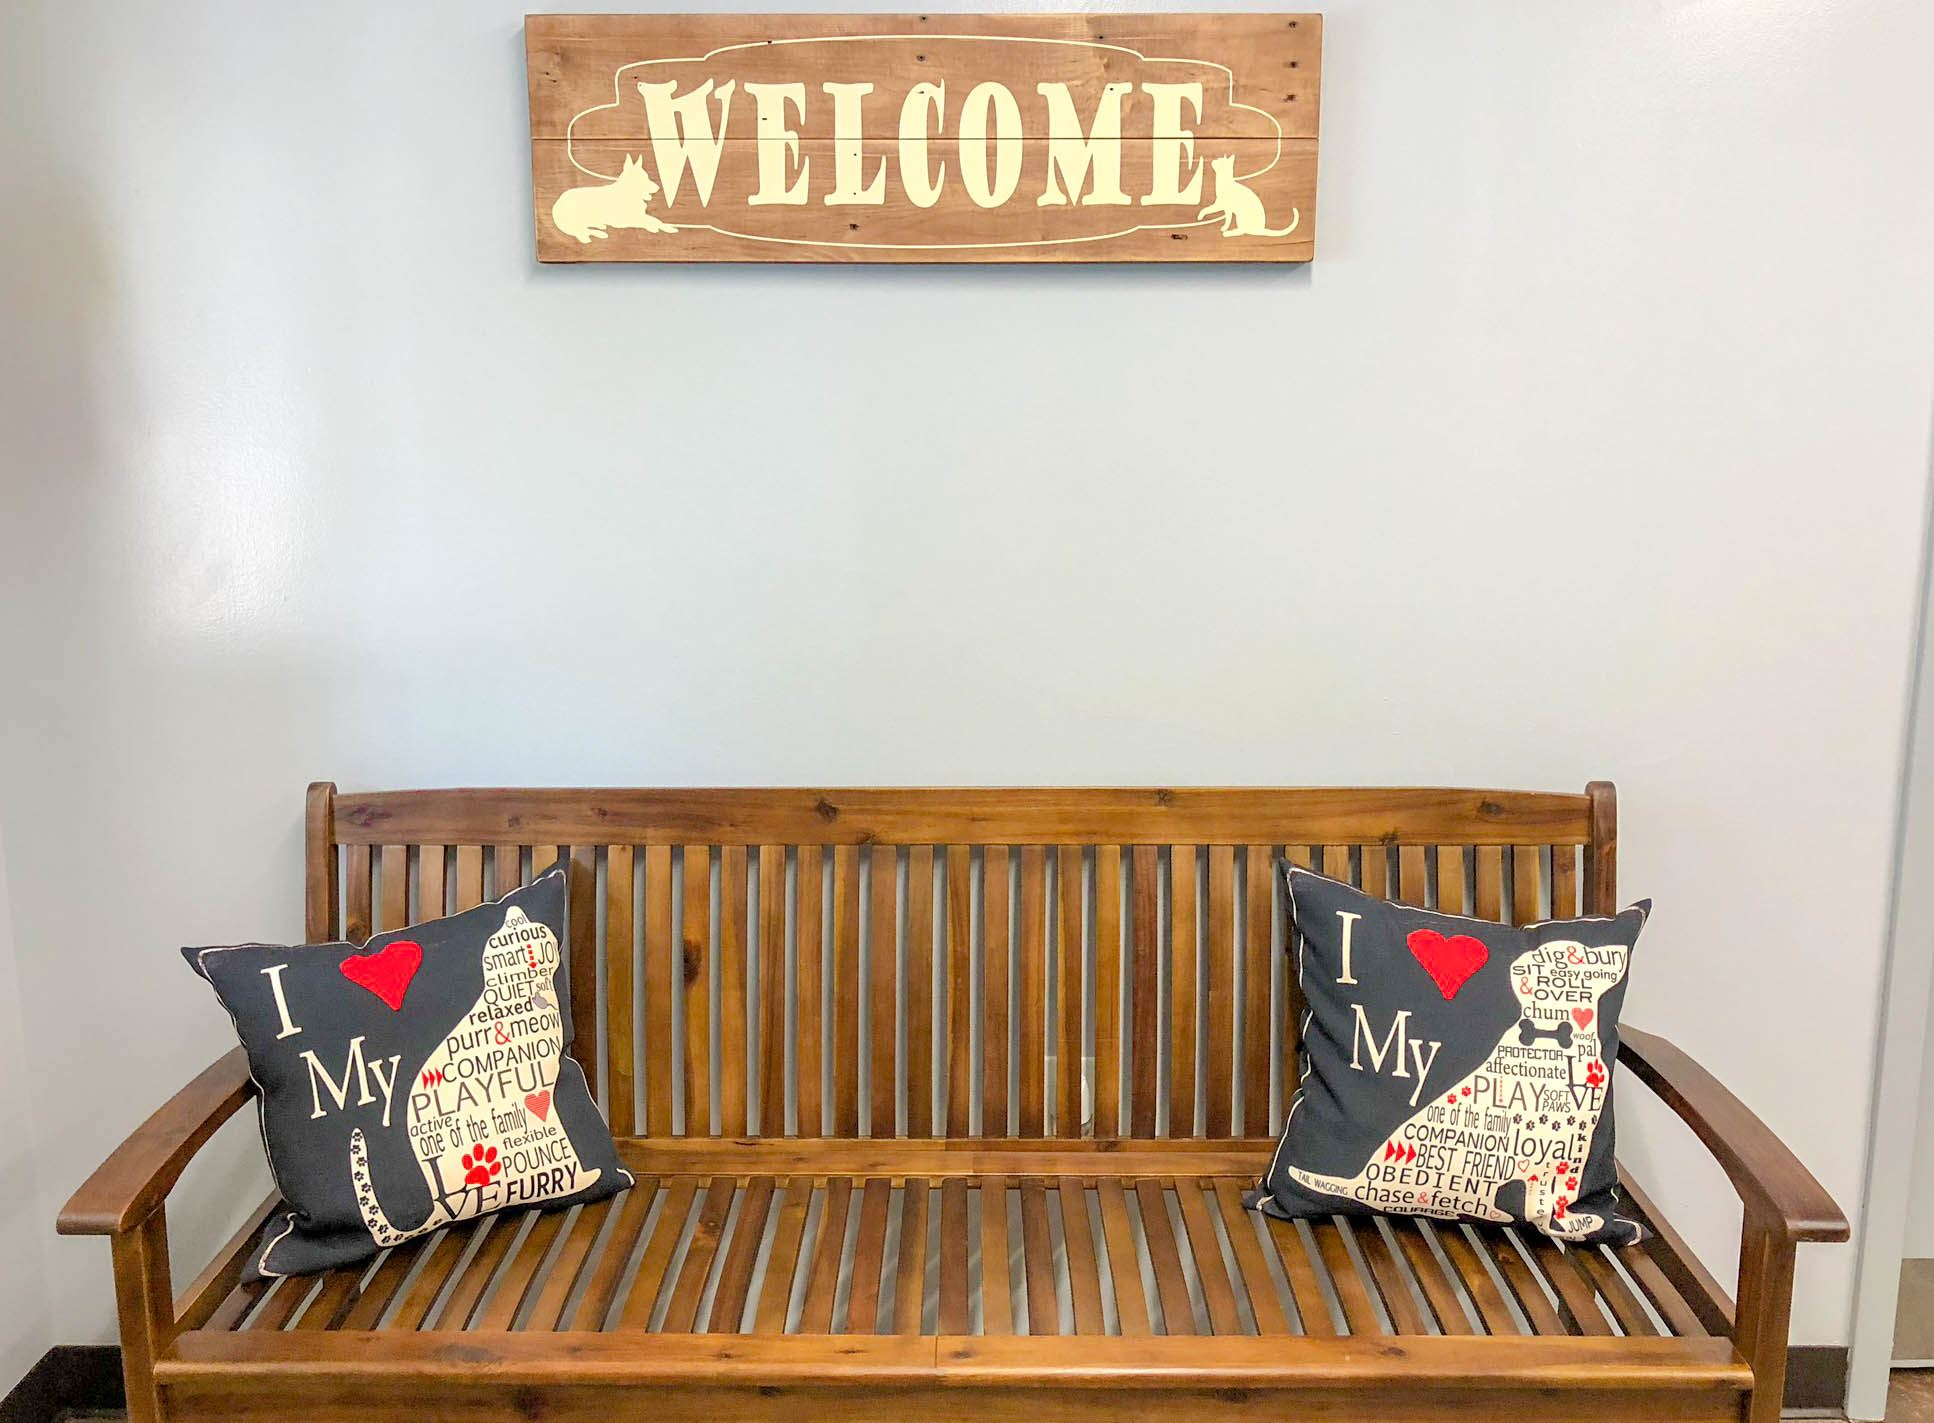 Animal Services Lobby bench with animal-themed pillows under a rustic welcome sign